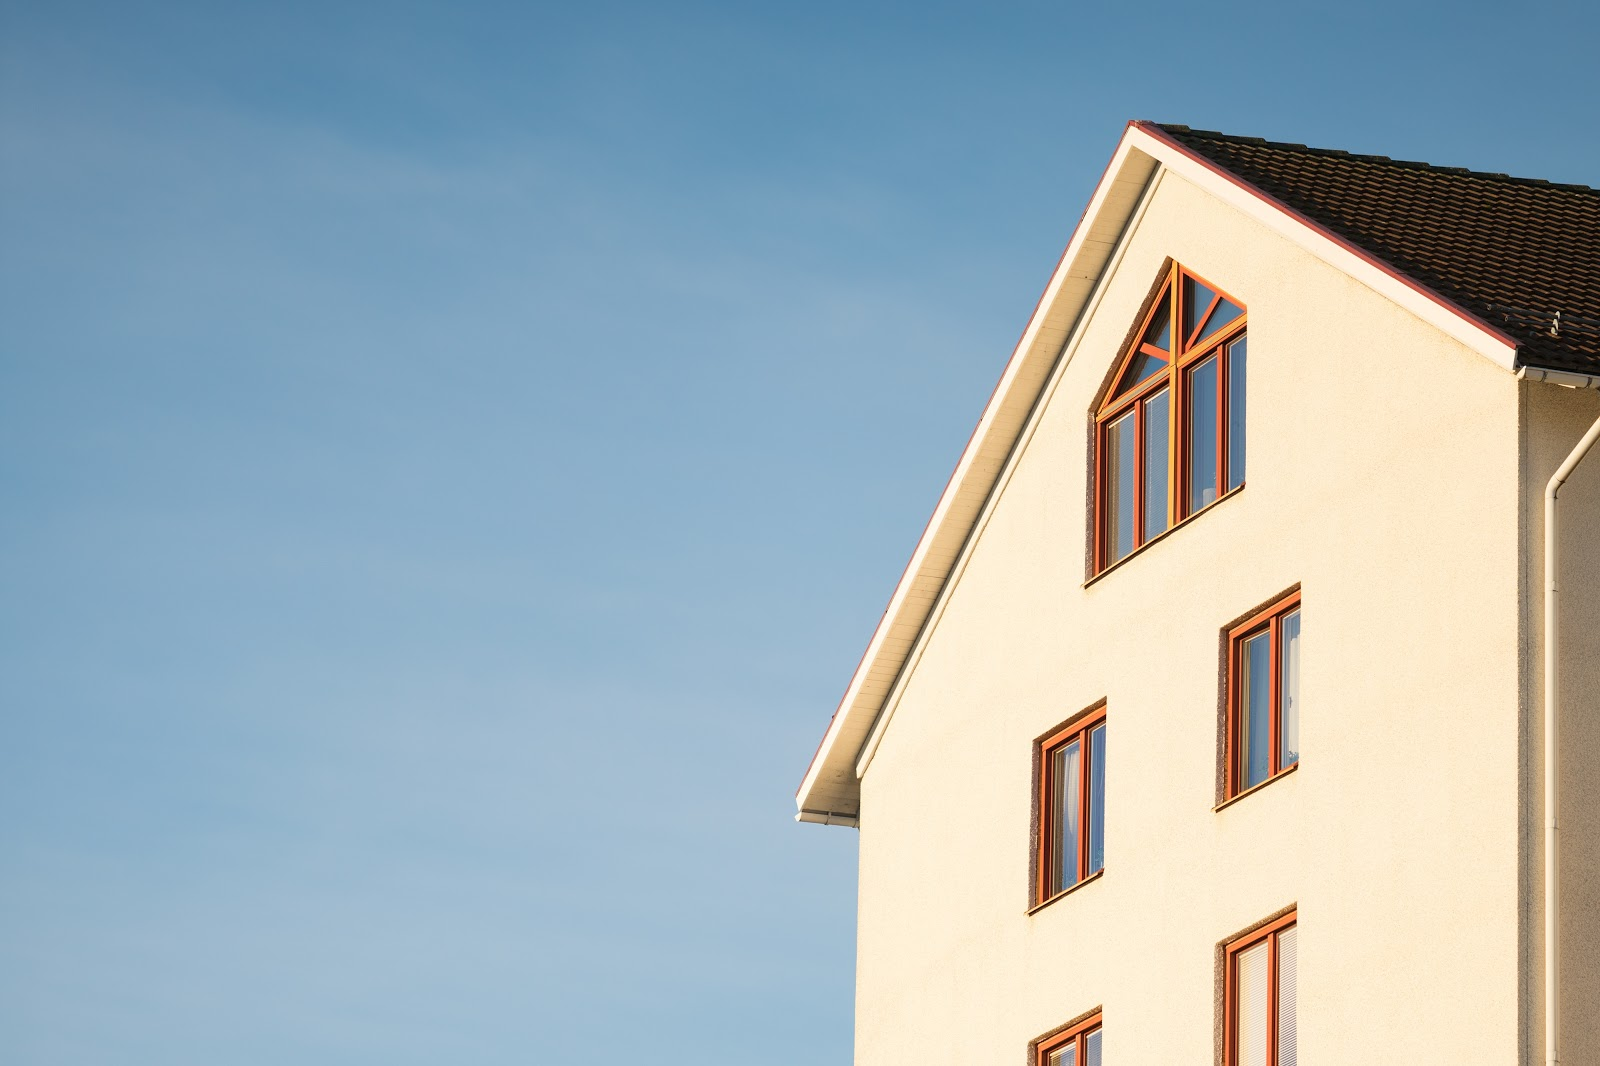 10 Things All Property Management Beginners Should Know